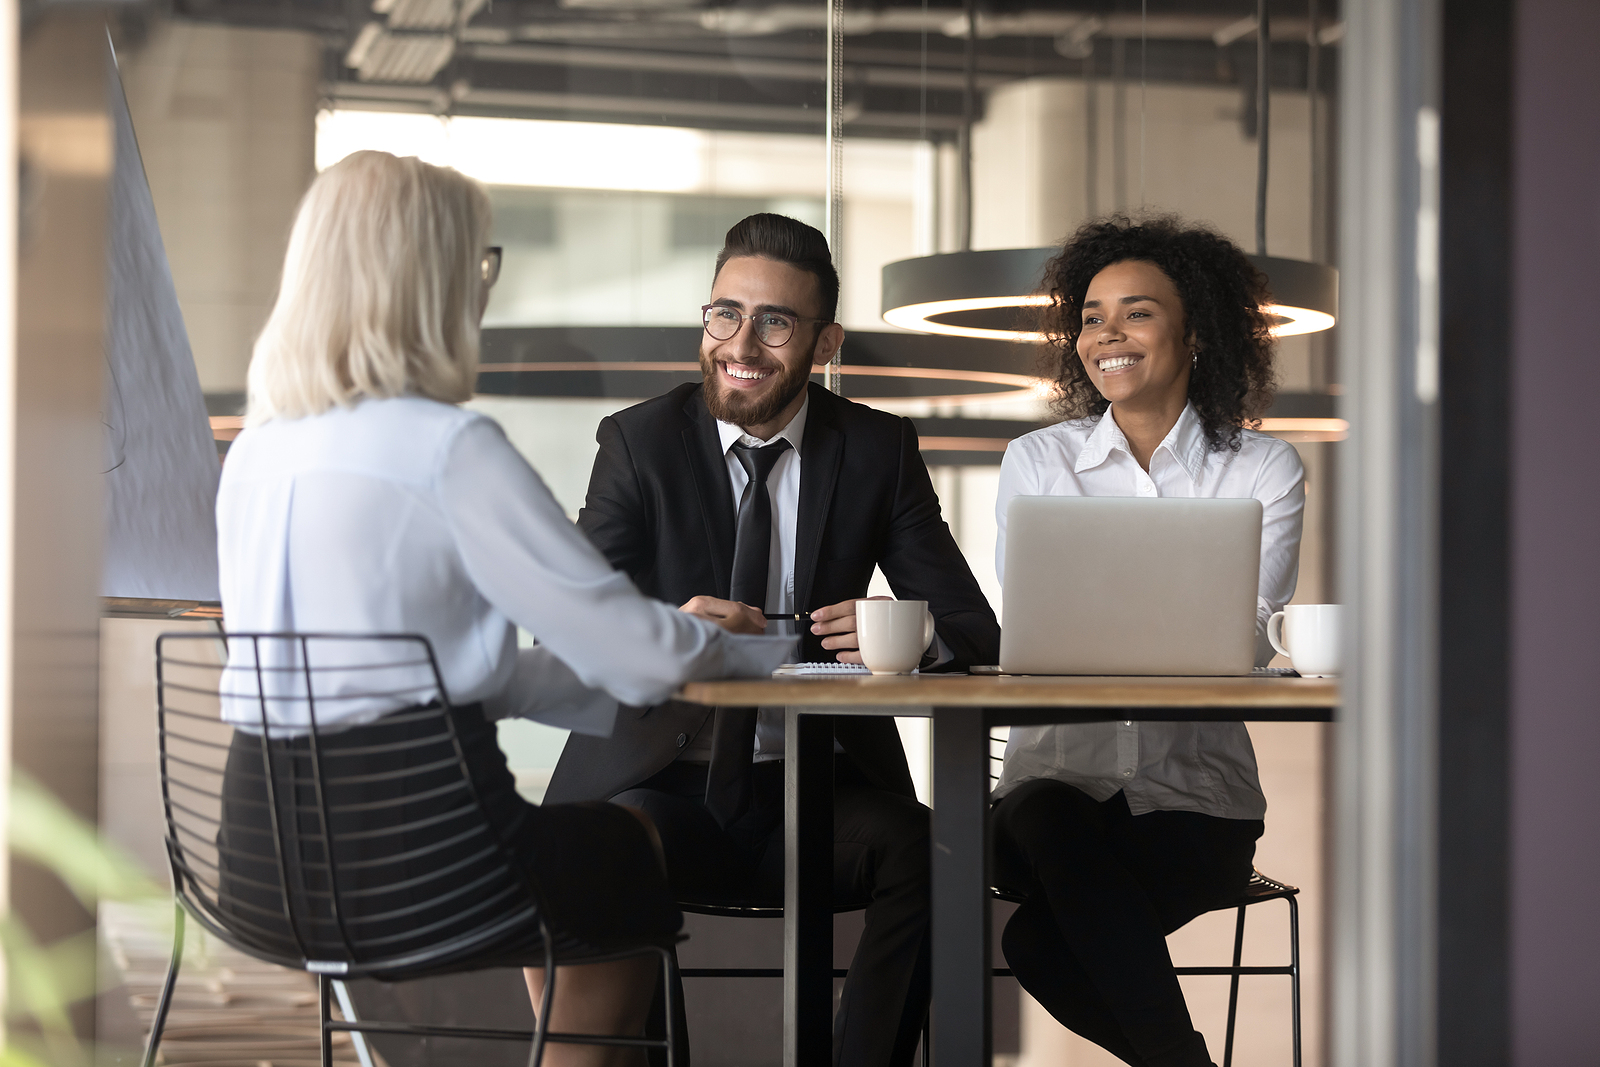 Hiring Manager interviews job candidate for IT role.